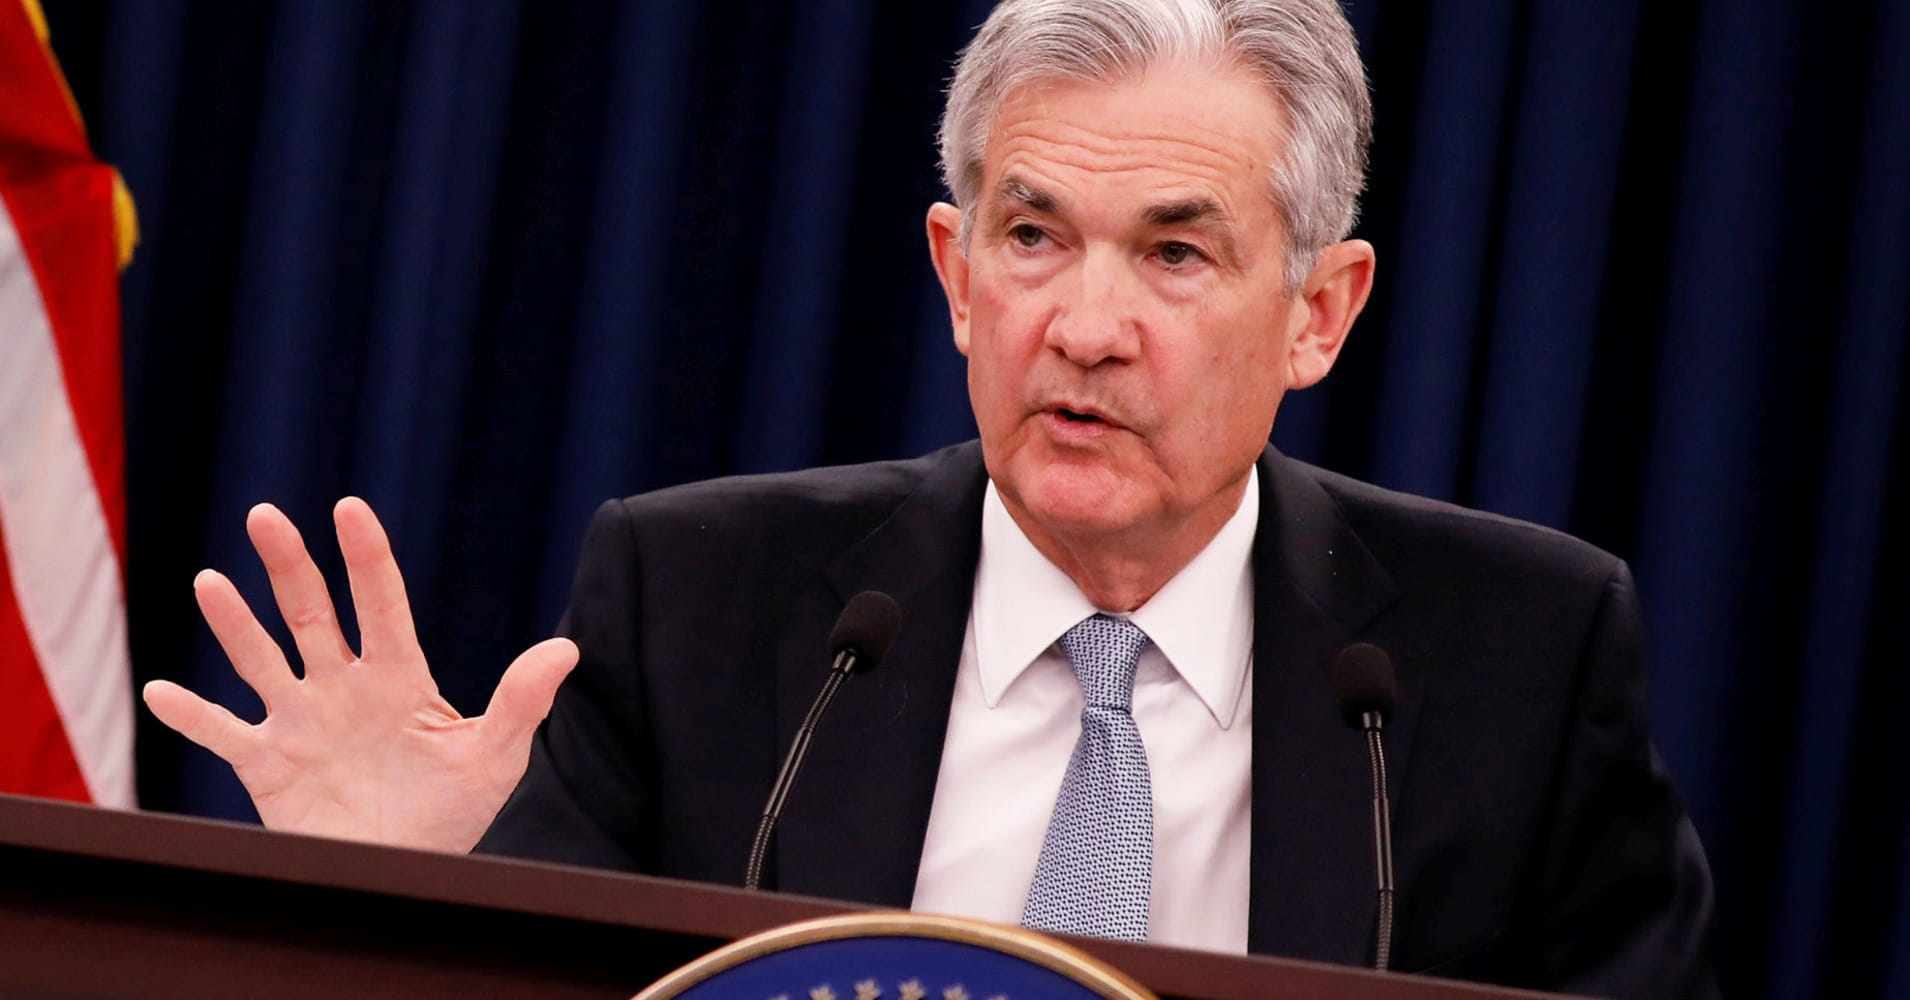 Fed leaves rates unchanged, notes slowing in business investment